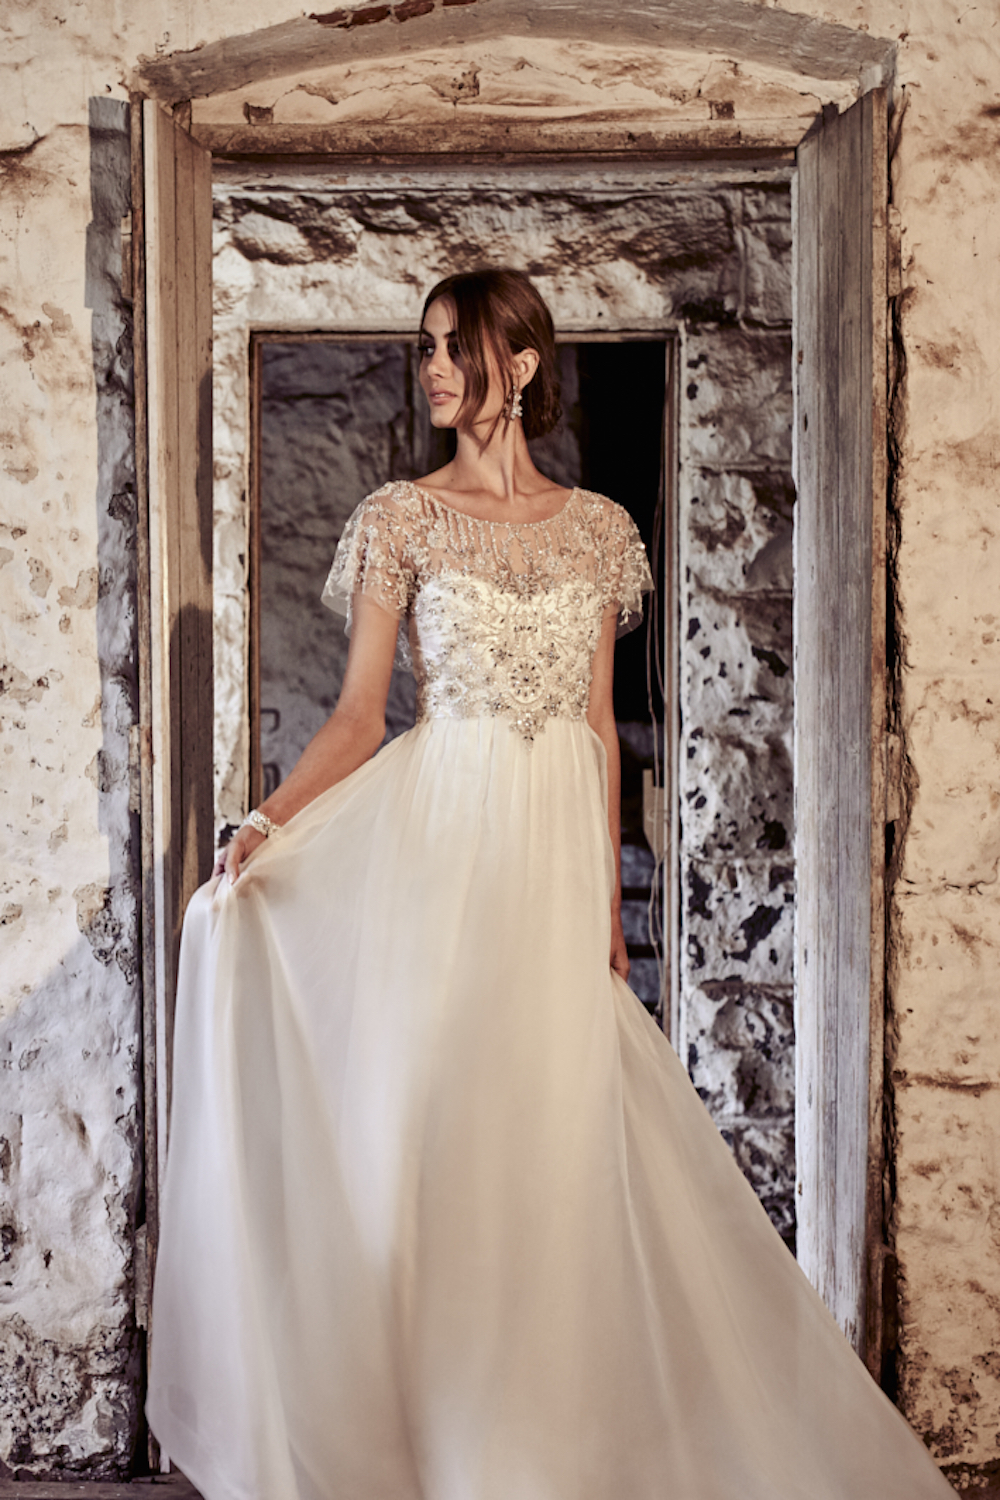 Adele-Dress_SilkTulle_Eternal-Heart-Collection-7 (1) copy.jpg